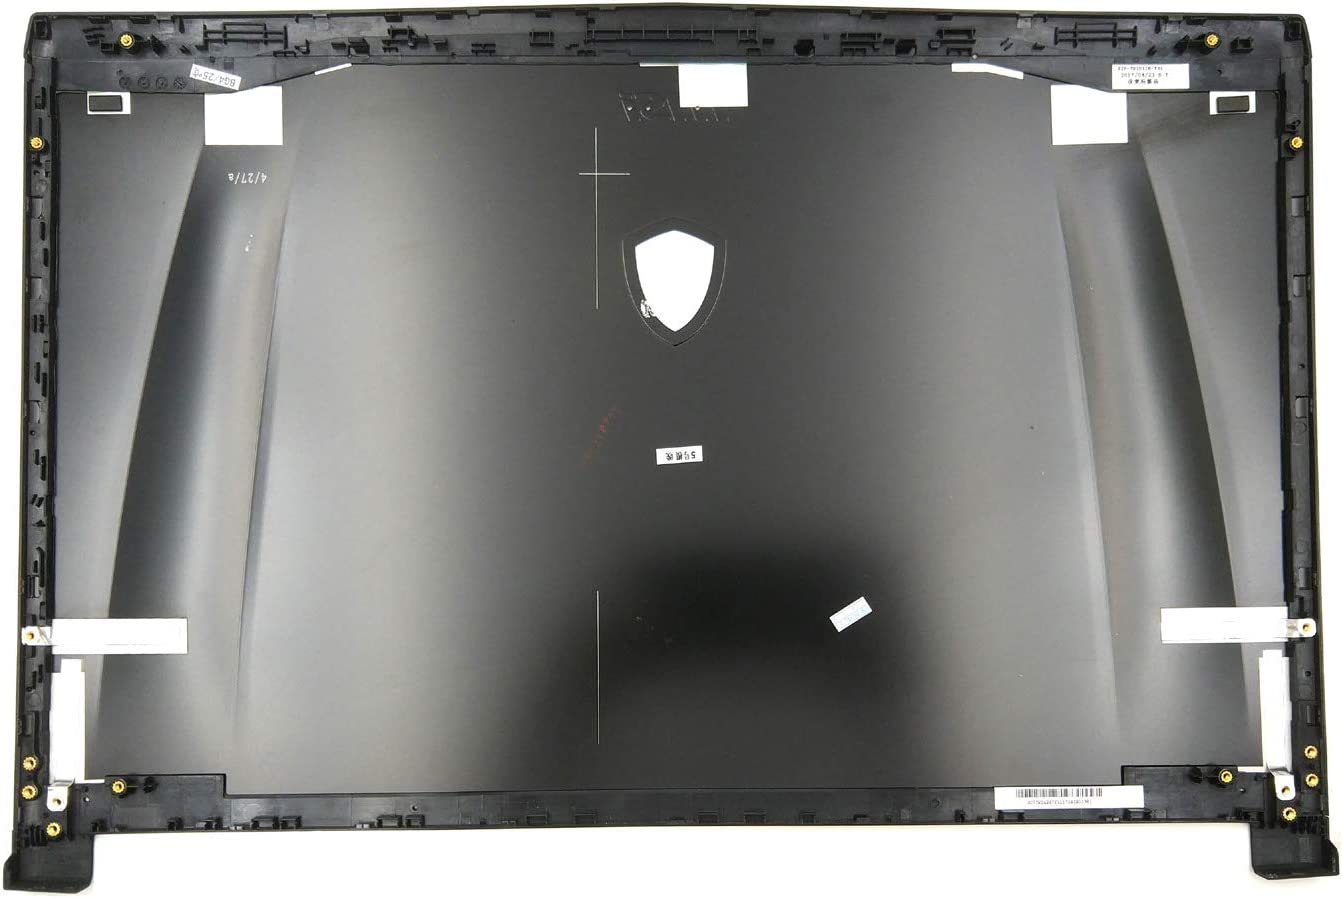 LCD Back Cover Rear Lid for MSI GE62 6QD//GE62 6QE//GE62 6QF Apache Pro